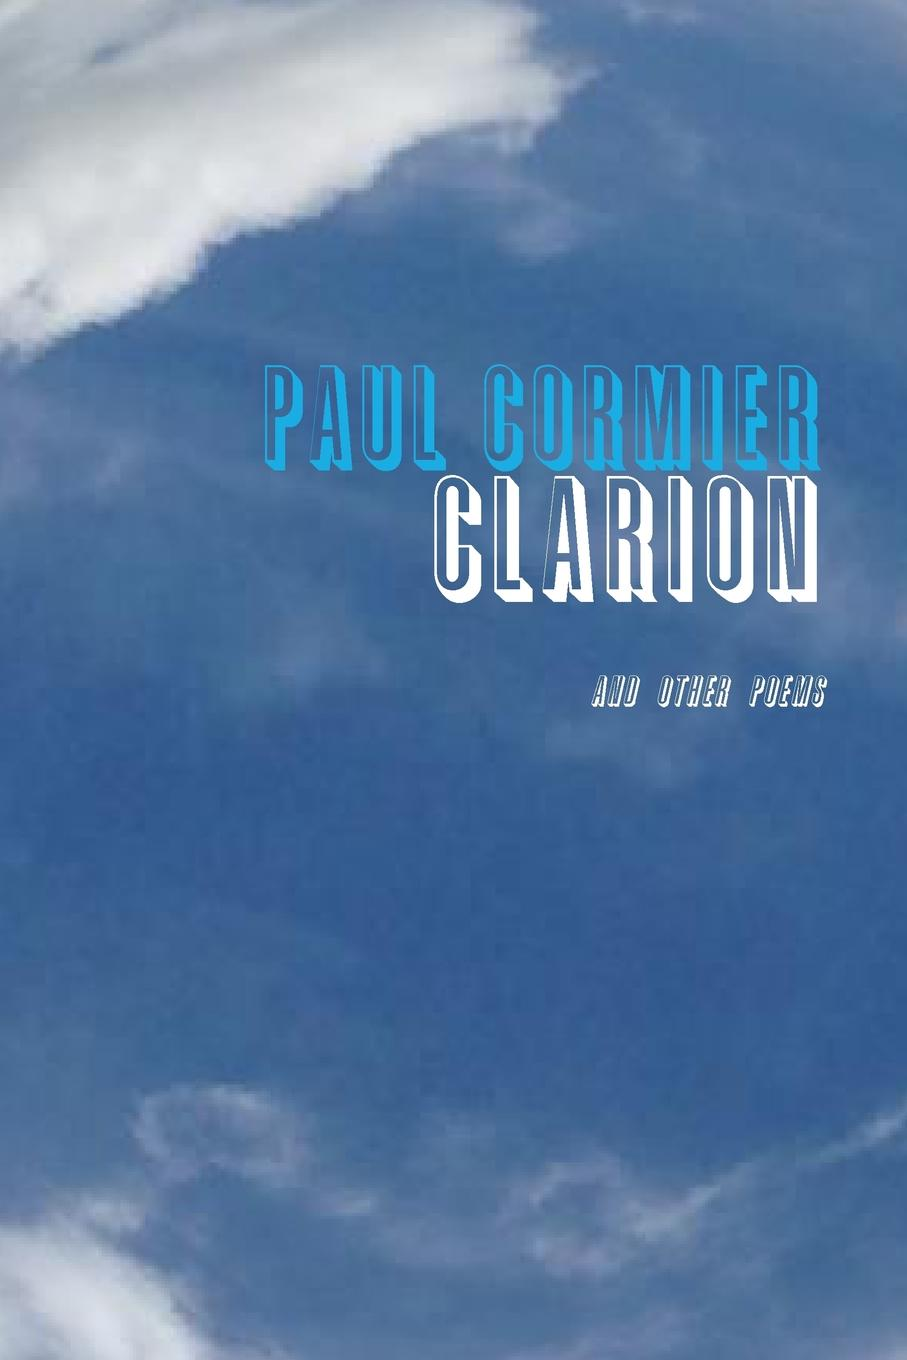 PAUL CORMIER CLARION AND OTHER POEMS deacon angeline hawkins childhood days and other poems